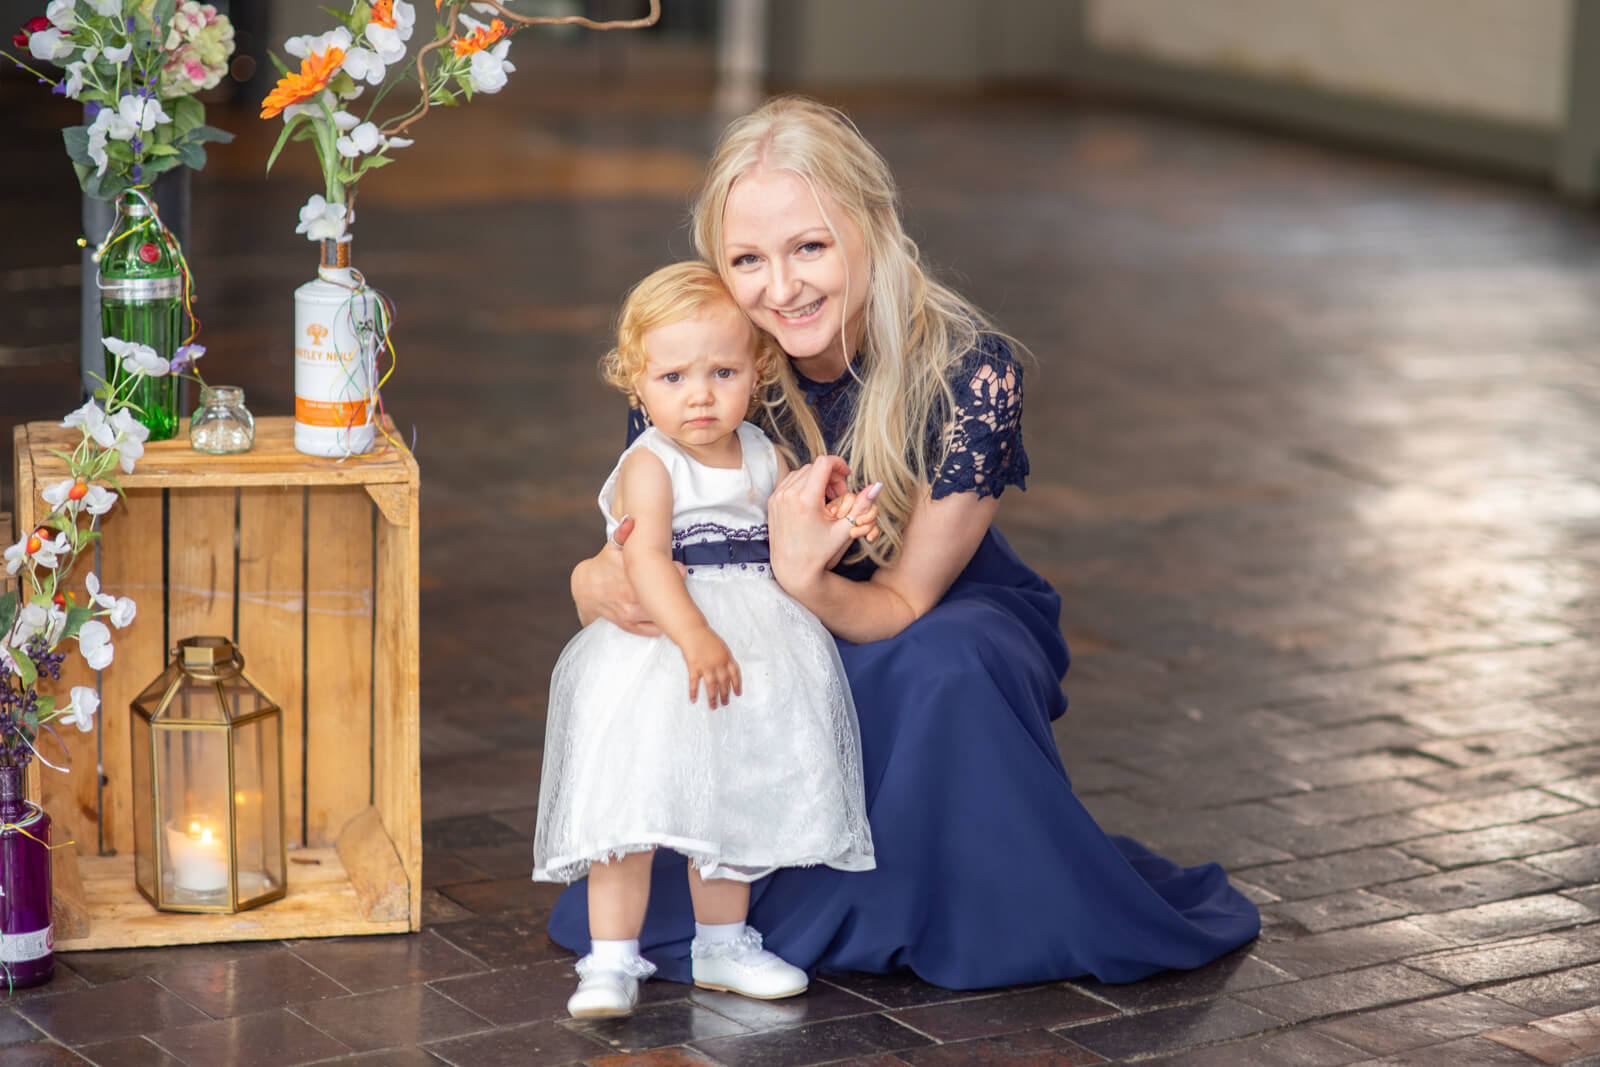 Bridesmaid crouches down and poses with her baby daughter in a pretty white dress